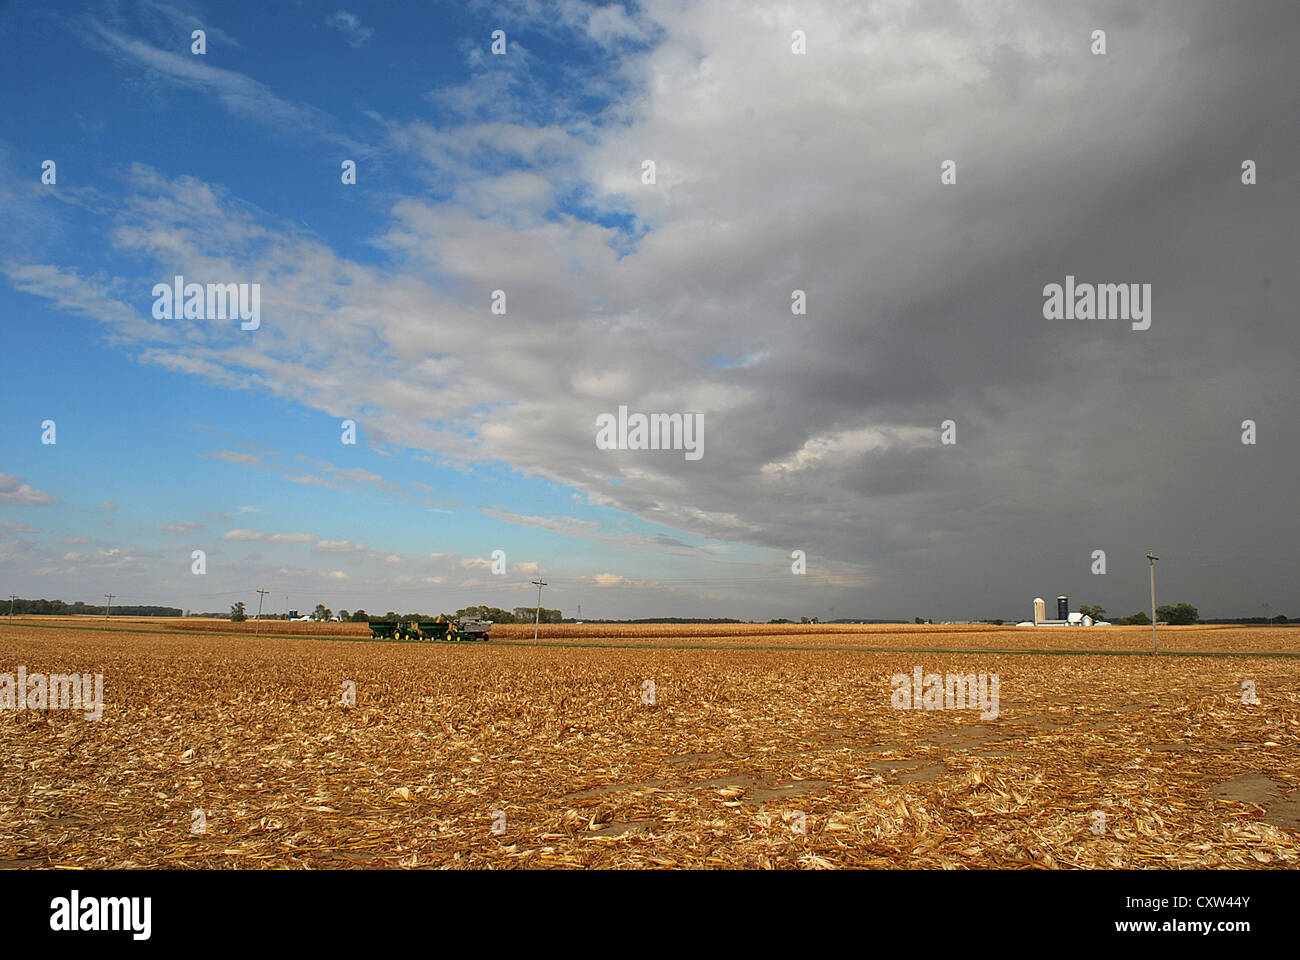 The harvest continues beneath threatening skies. - Stock Image